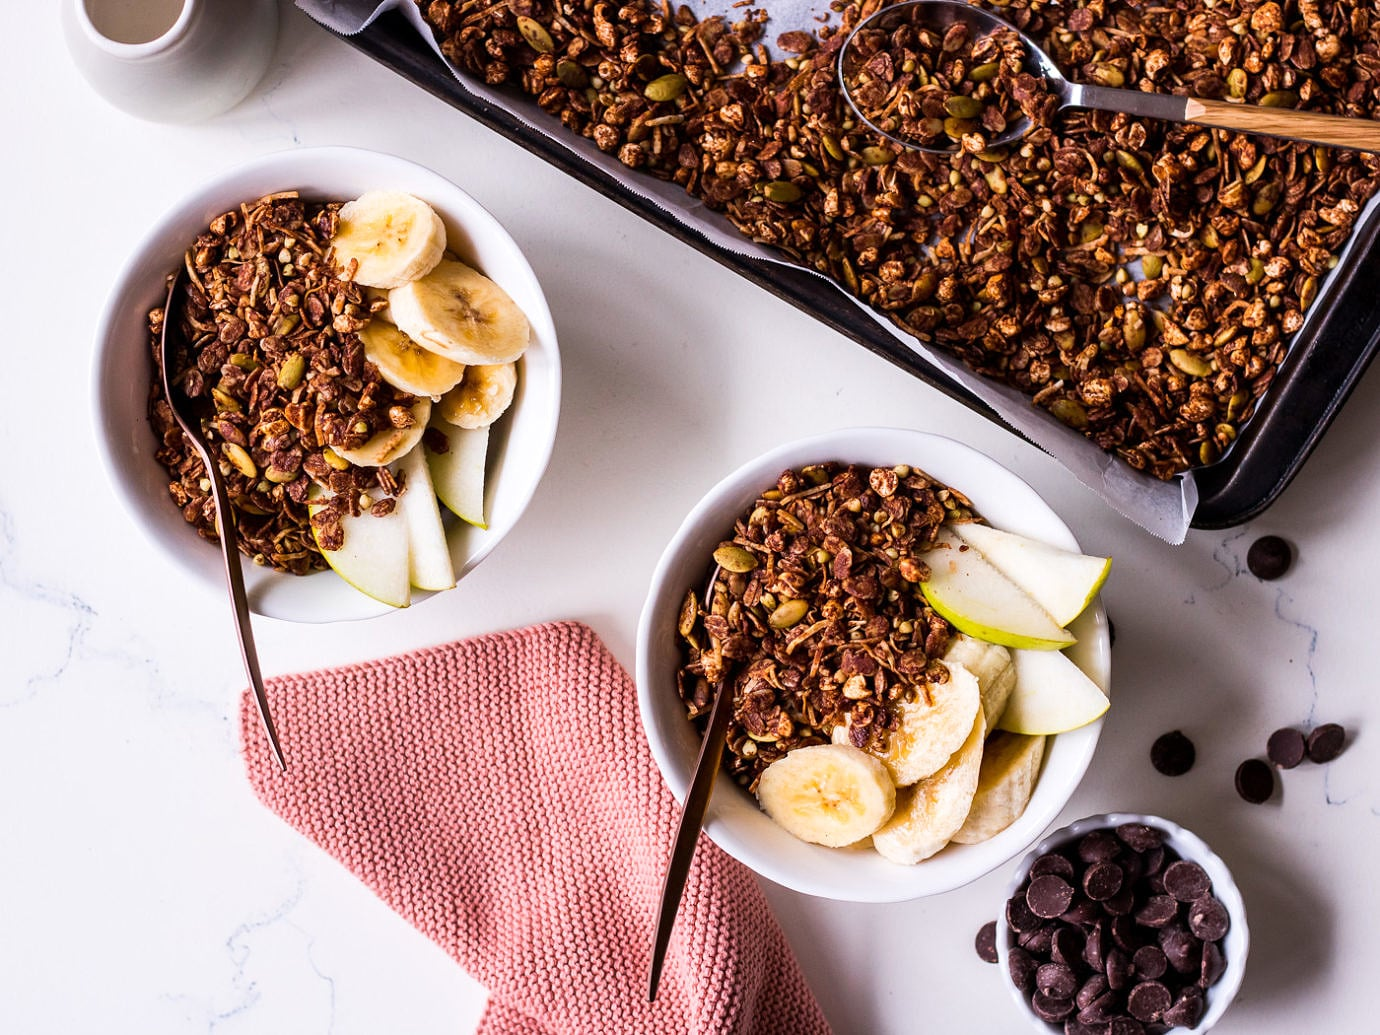 Two small white bowls with pear, banana, chocolate granola and bronze spoons, surrounded by a small cup of chocolate chips and tray of chocolate granola